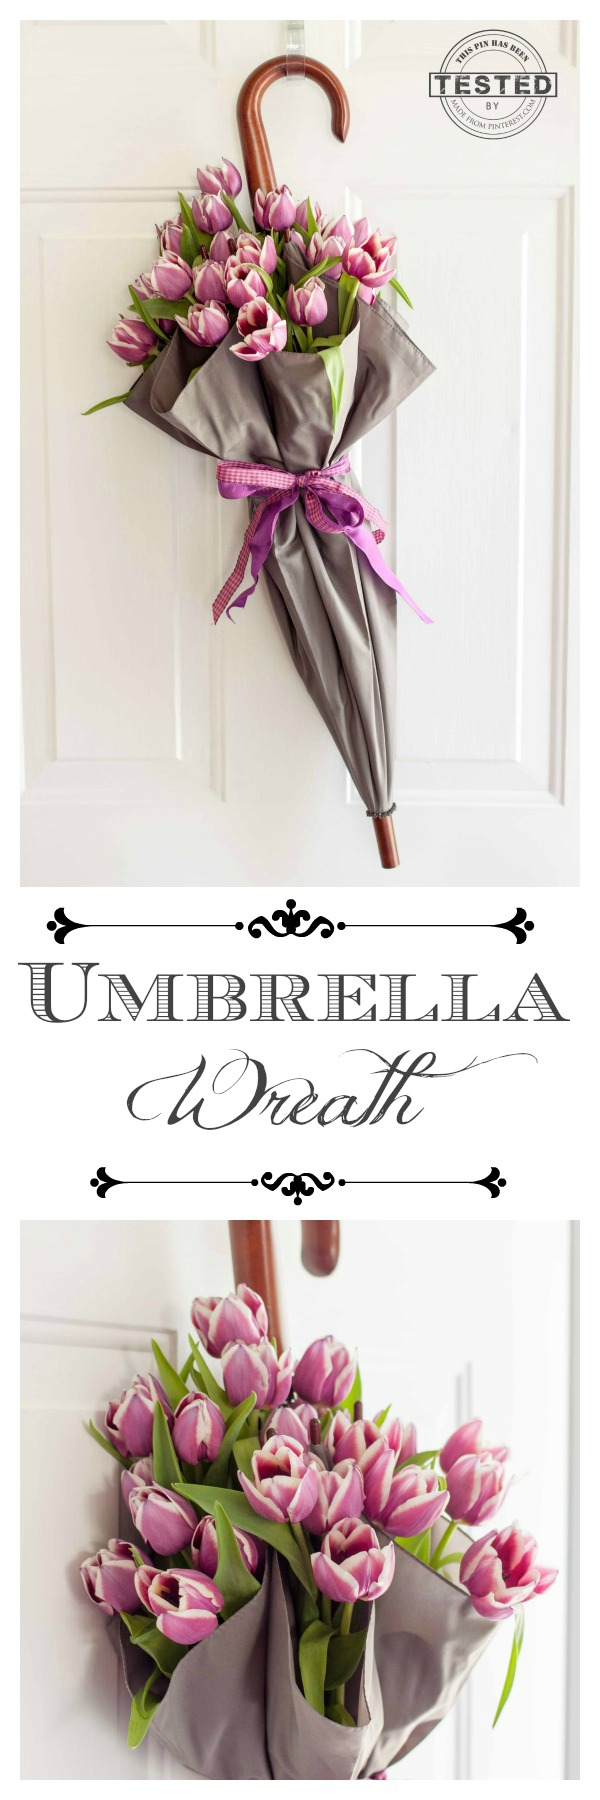 DIY Umbrella Spring Wreath Tutorial via This Grandma Is Fun - This Umbrella Wreath is easy to make. Great tip for using fresh flowers!